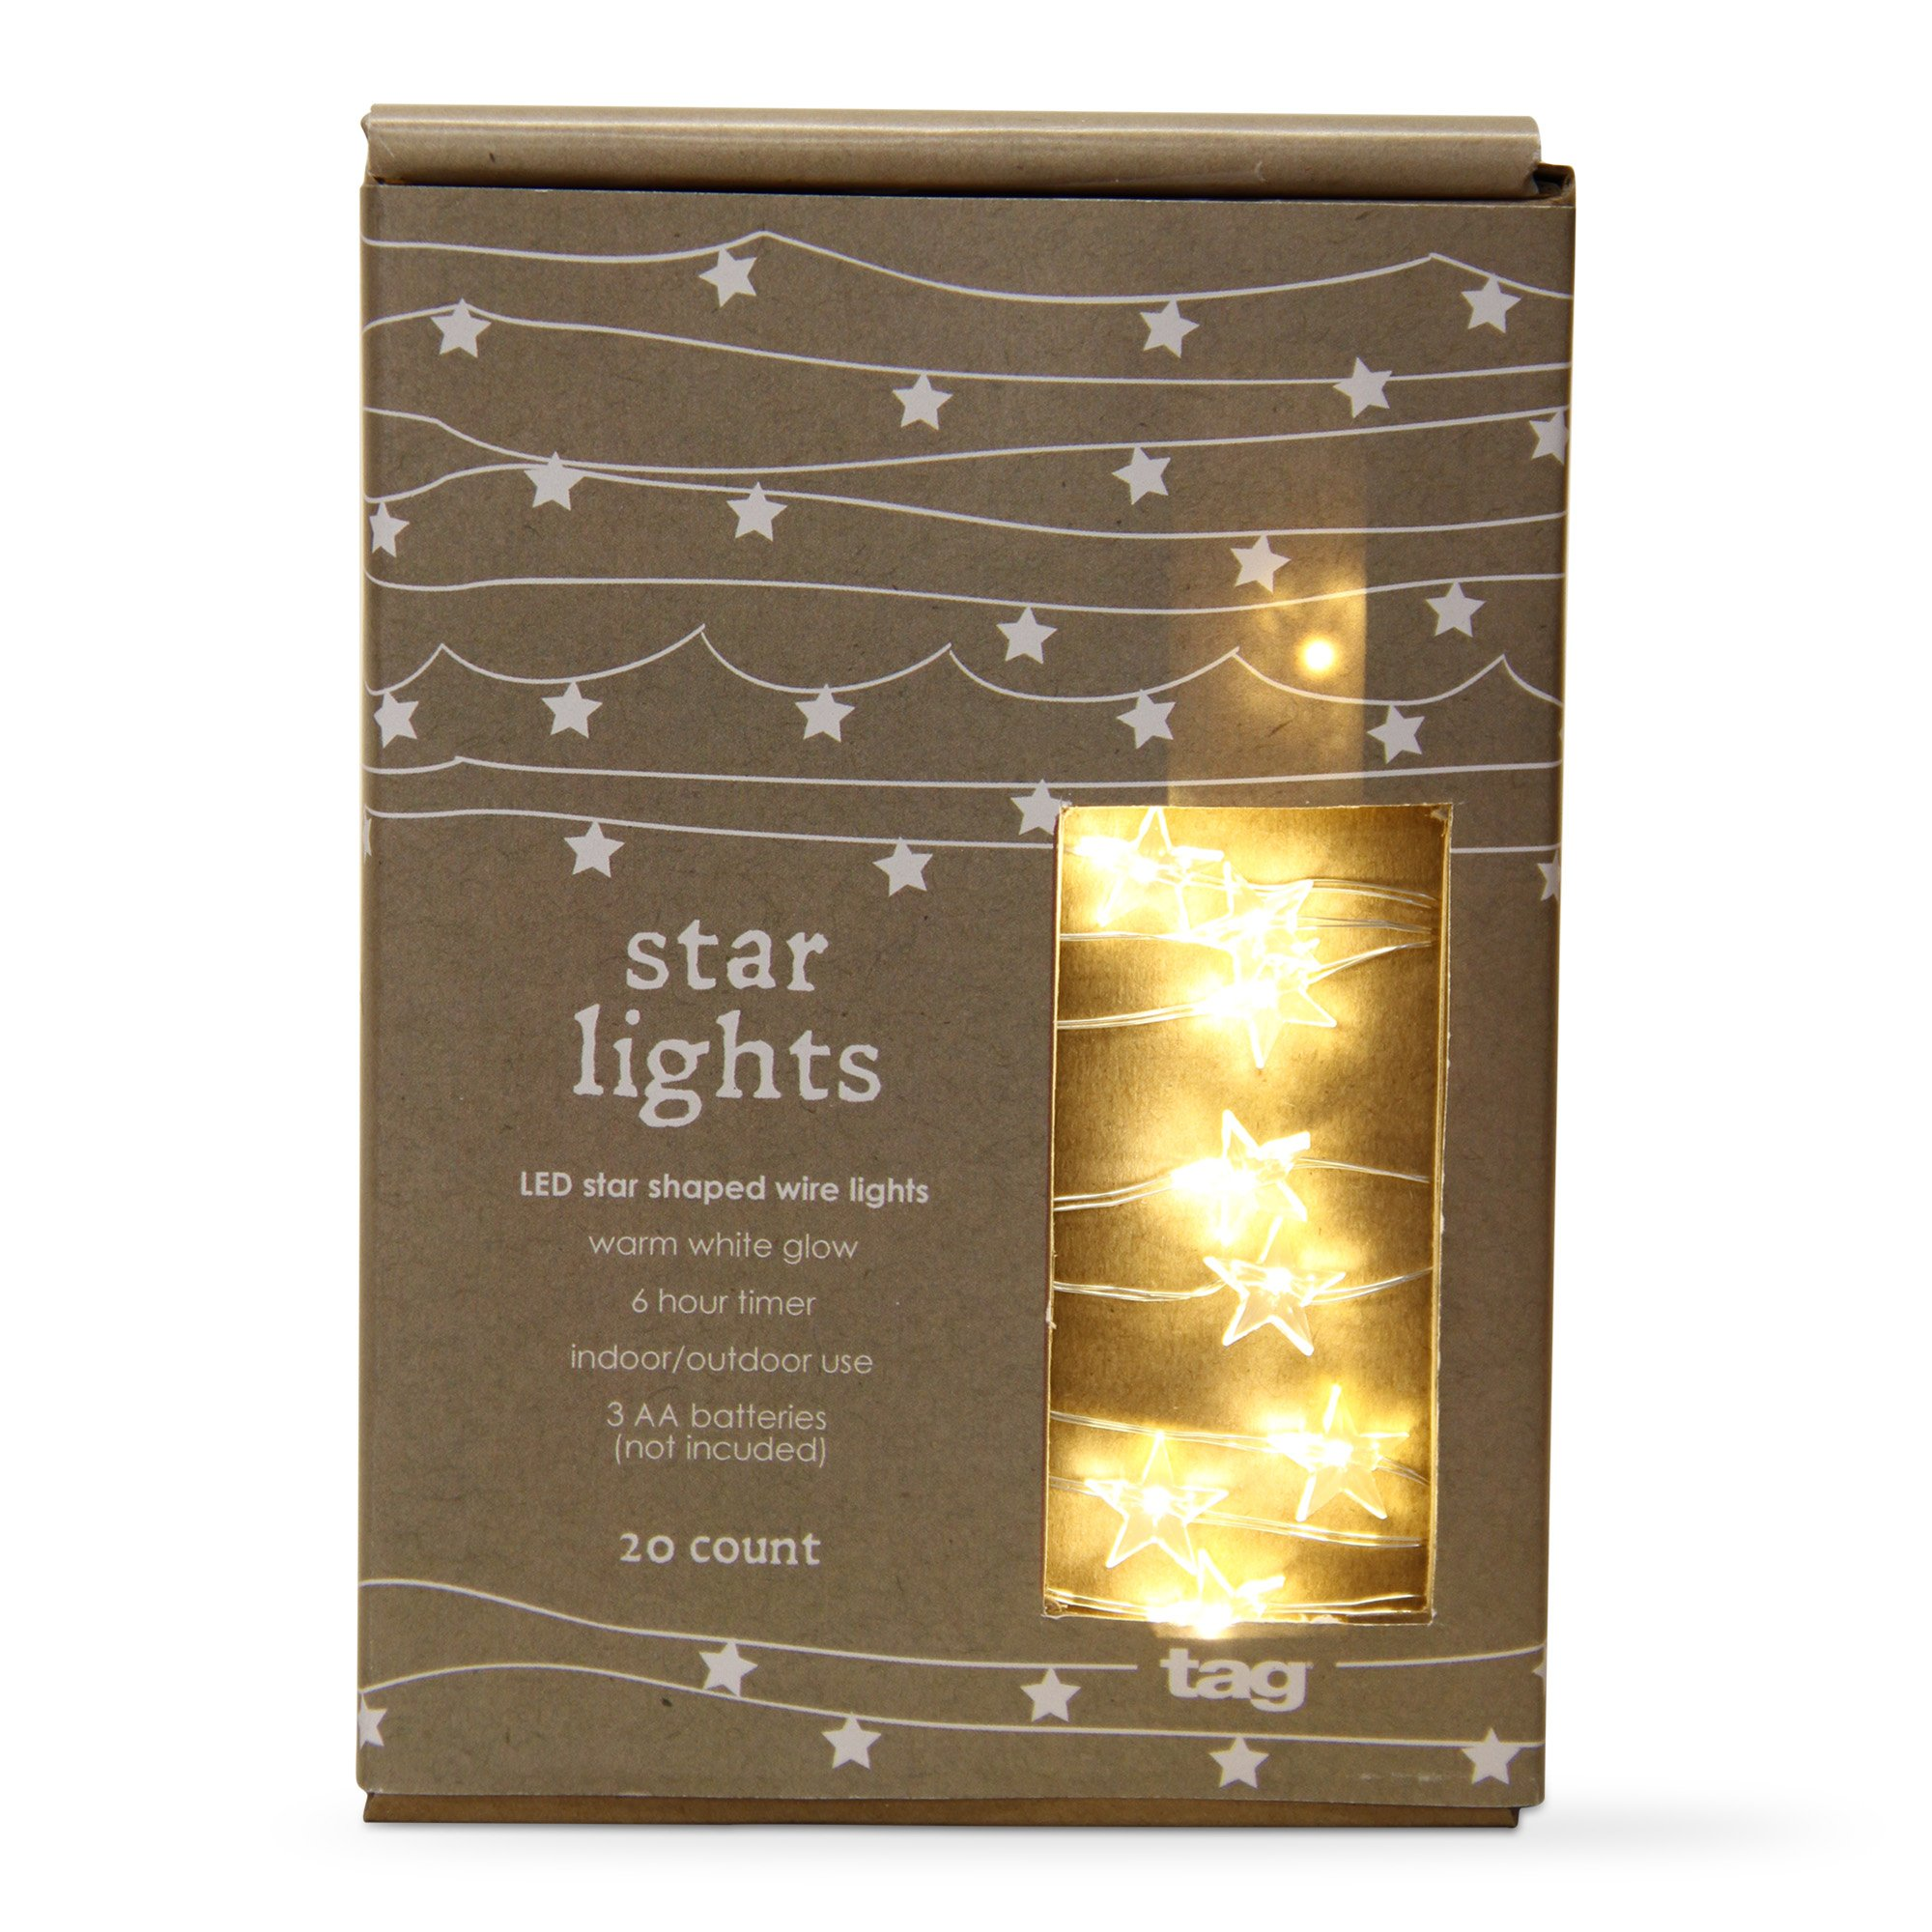 tag - Star Shaped Holiday LED Wire Lights, Perfect Addition to Home Décor, Clear (7 ft)